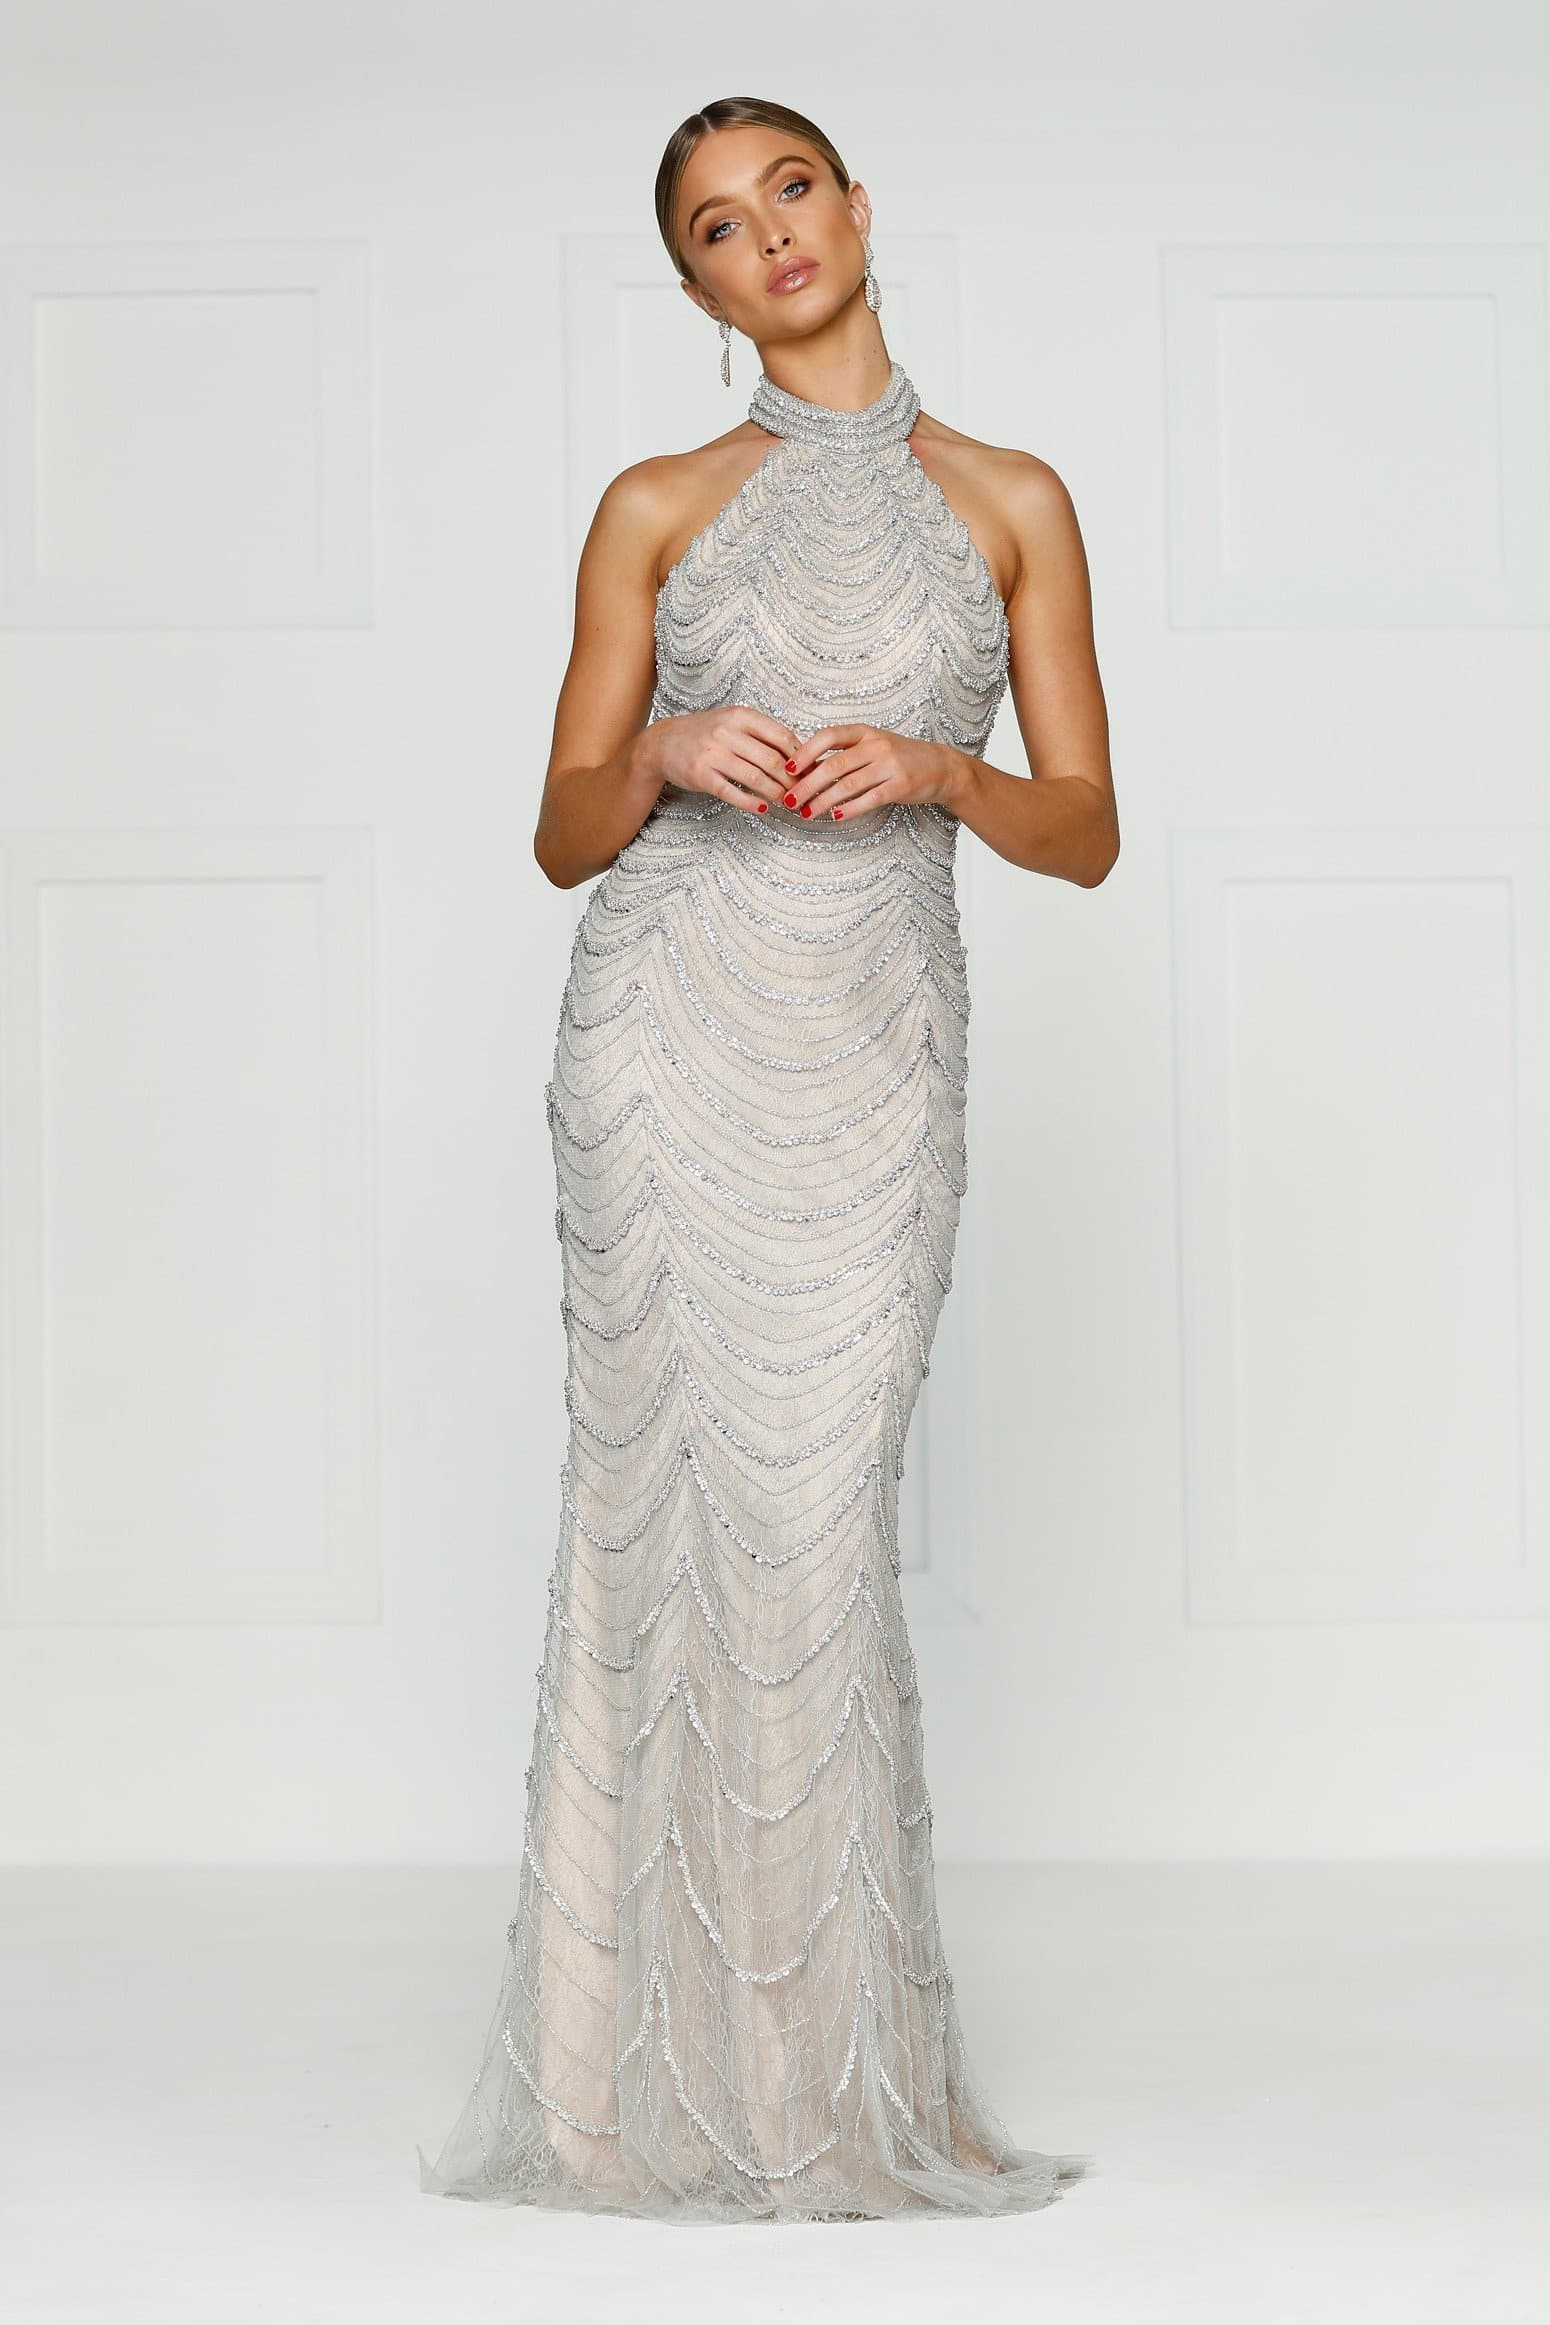 4d9280039e7 ... Mallory - Beaded Couture Sleeveless Gown with a Halter Neckline ...